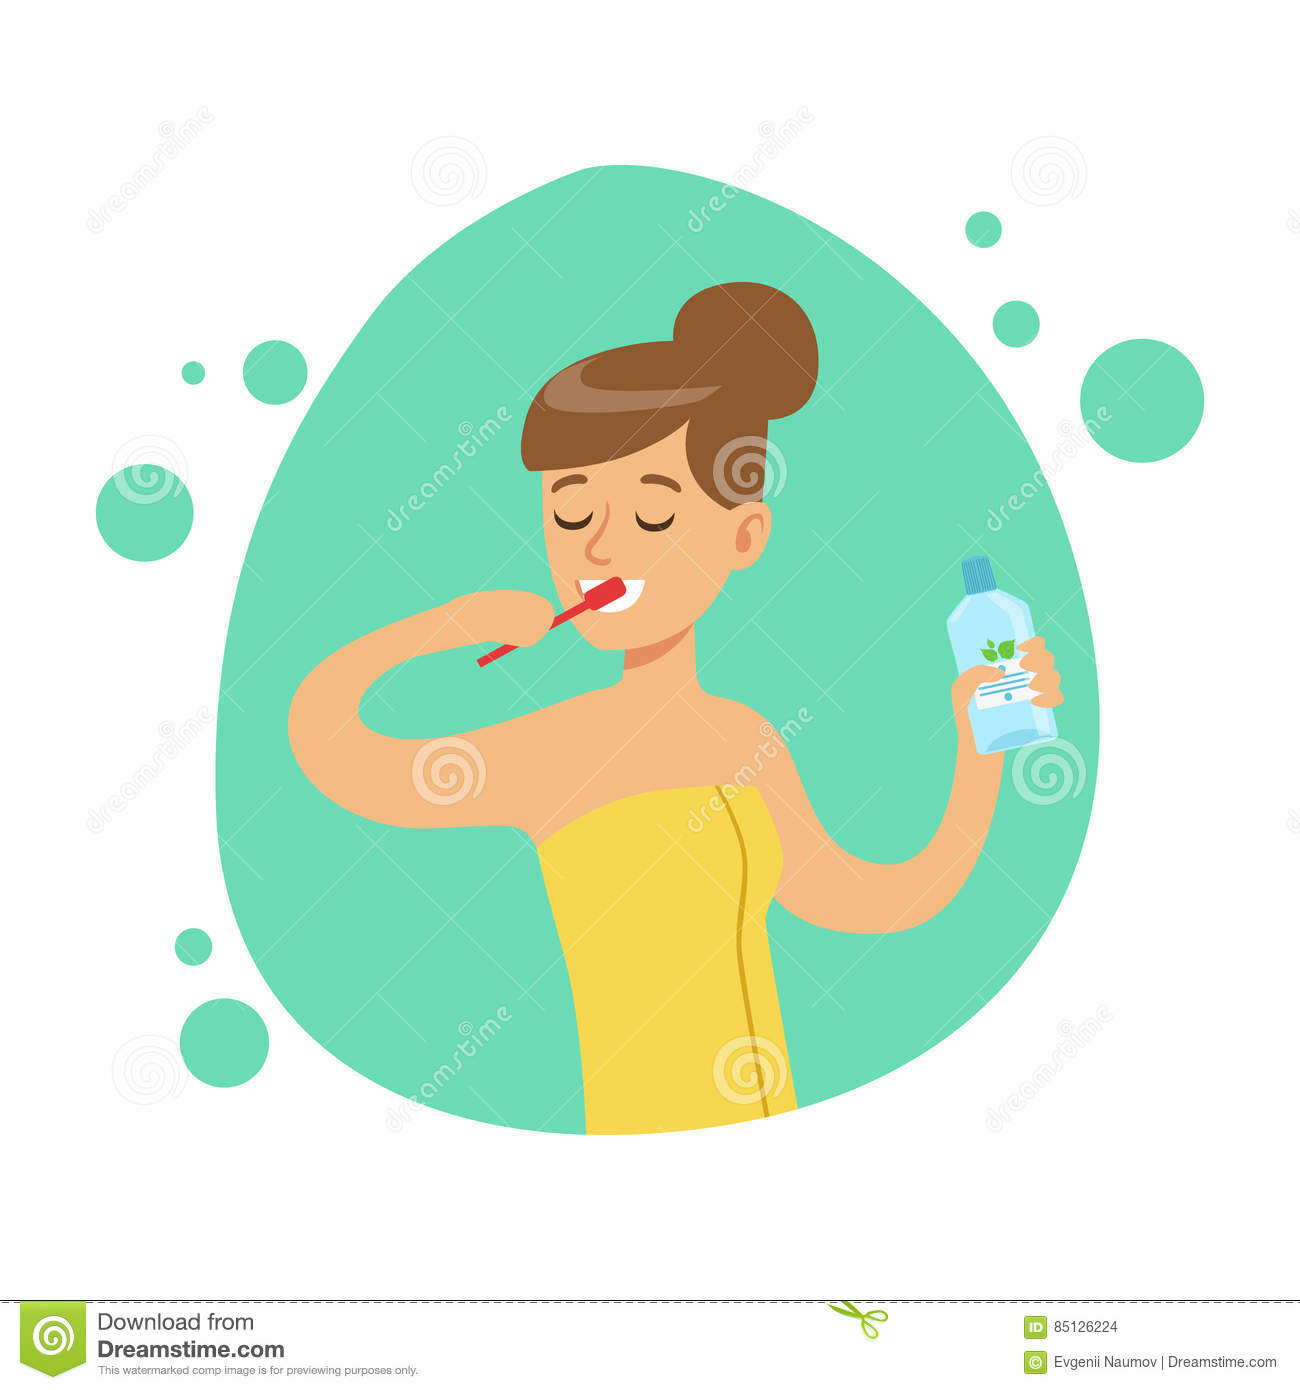 Woman Brushing Teeth Part Of People In The Bathroom Doing Their Routine Hygiene Procedures